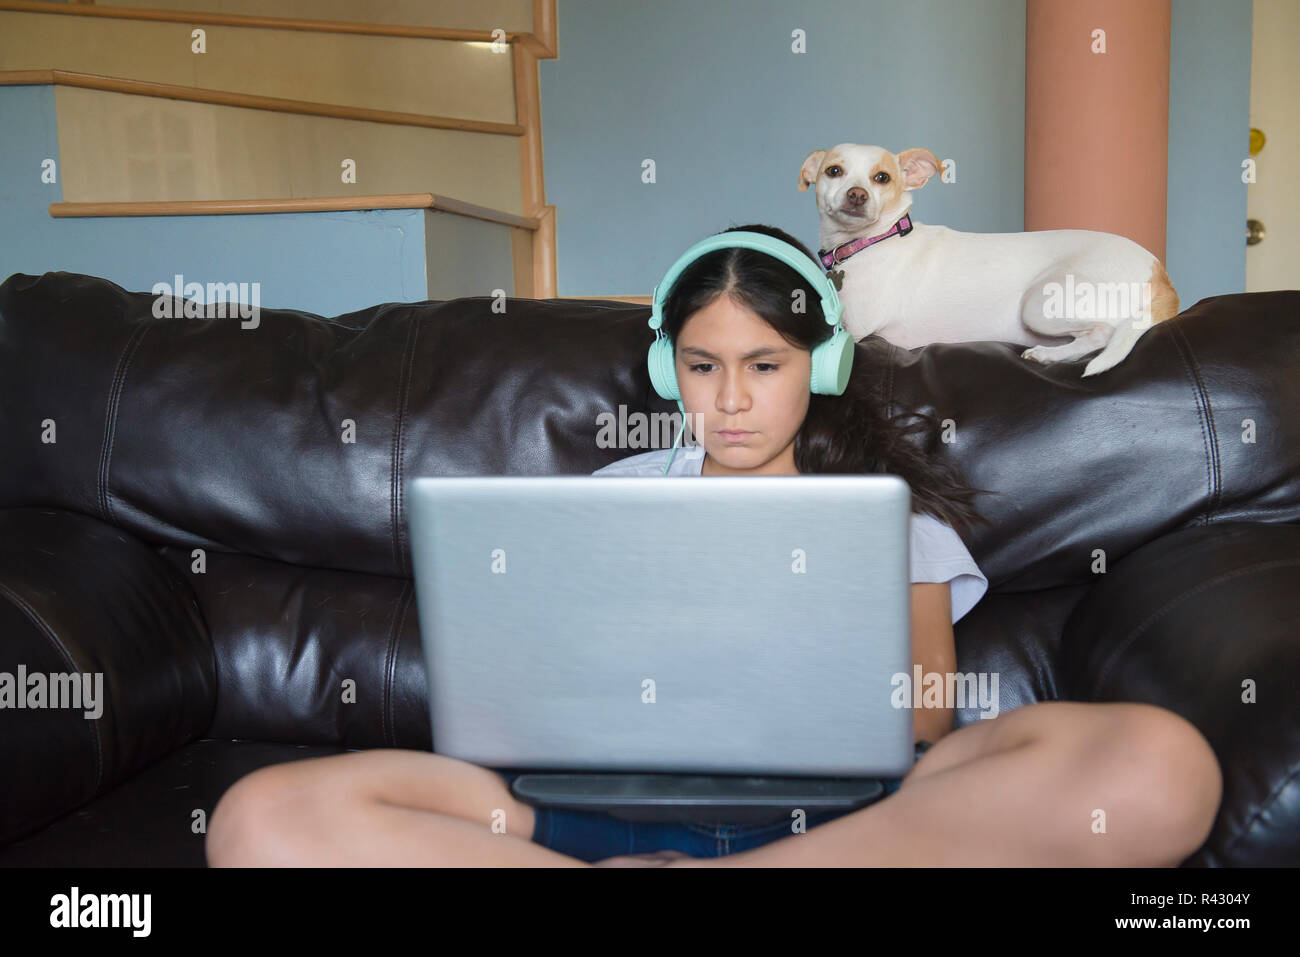 Pets in the home as family member.  Latin-Mexican Teenager listening to music on a laptop with her dog on a sofa inside the home - Stock Image